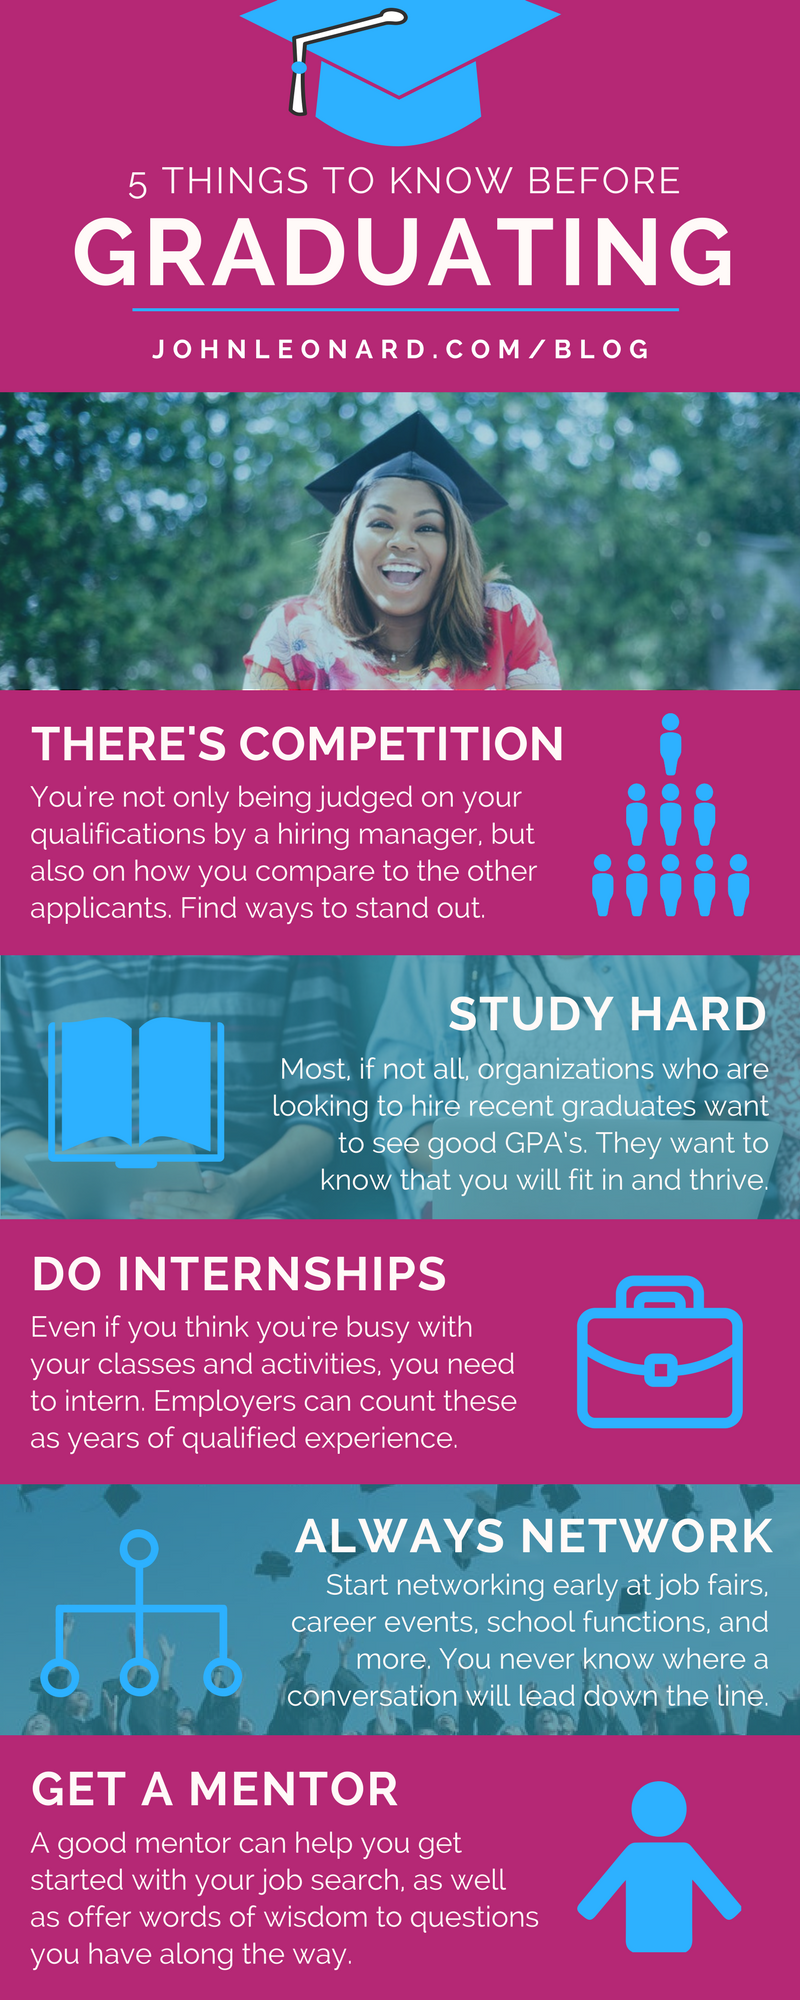 5 Things to Know Before Graduating Infographic-2.png